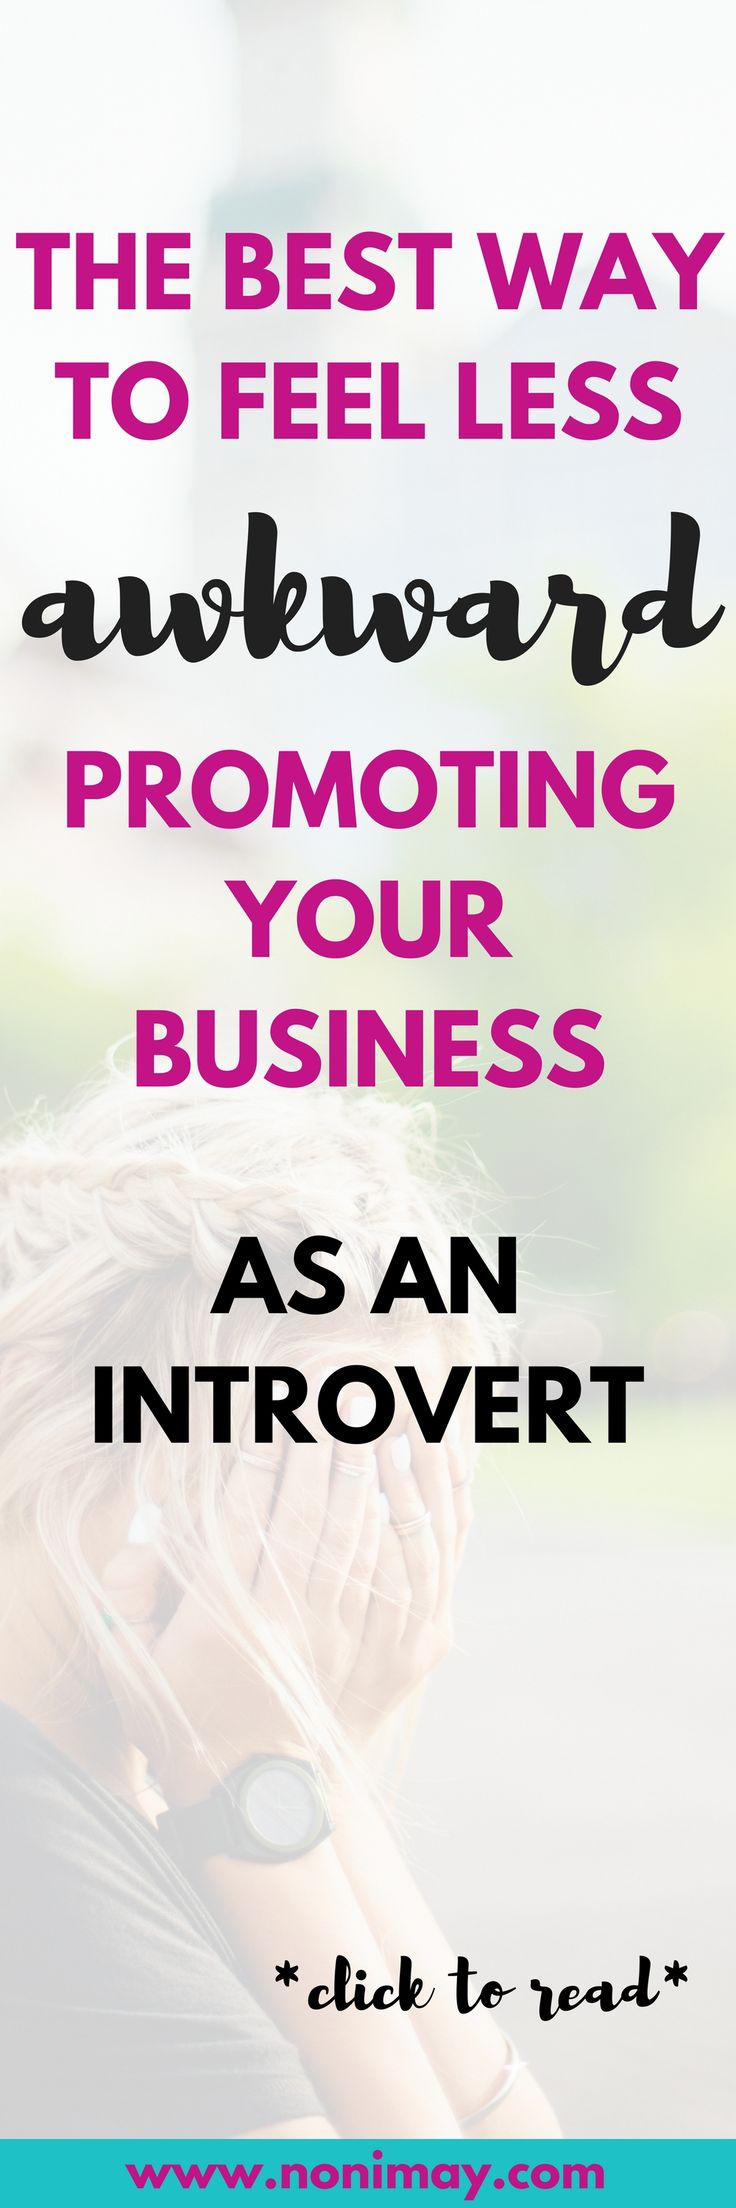 The best way to feel less awkward promoting your business as an introvert